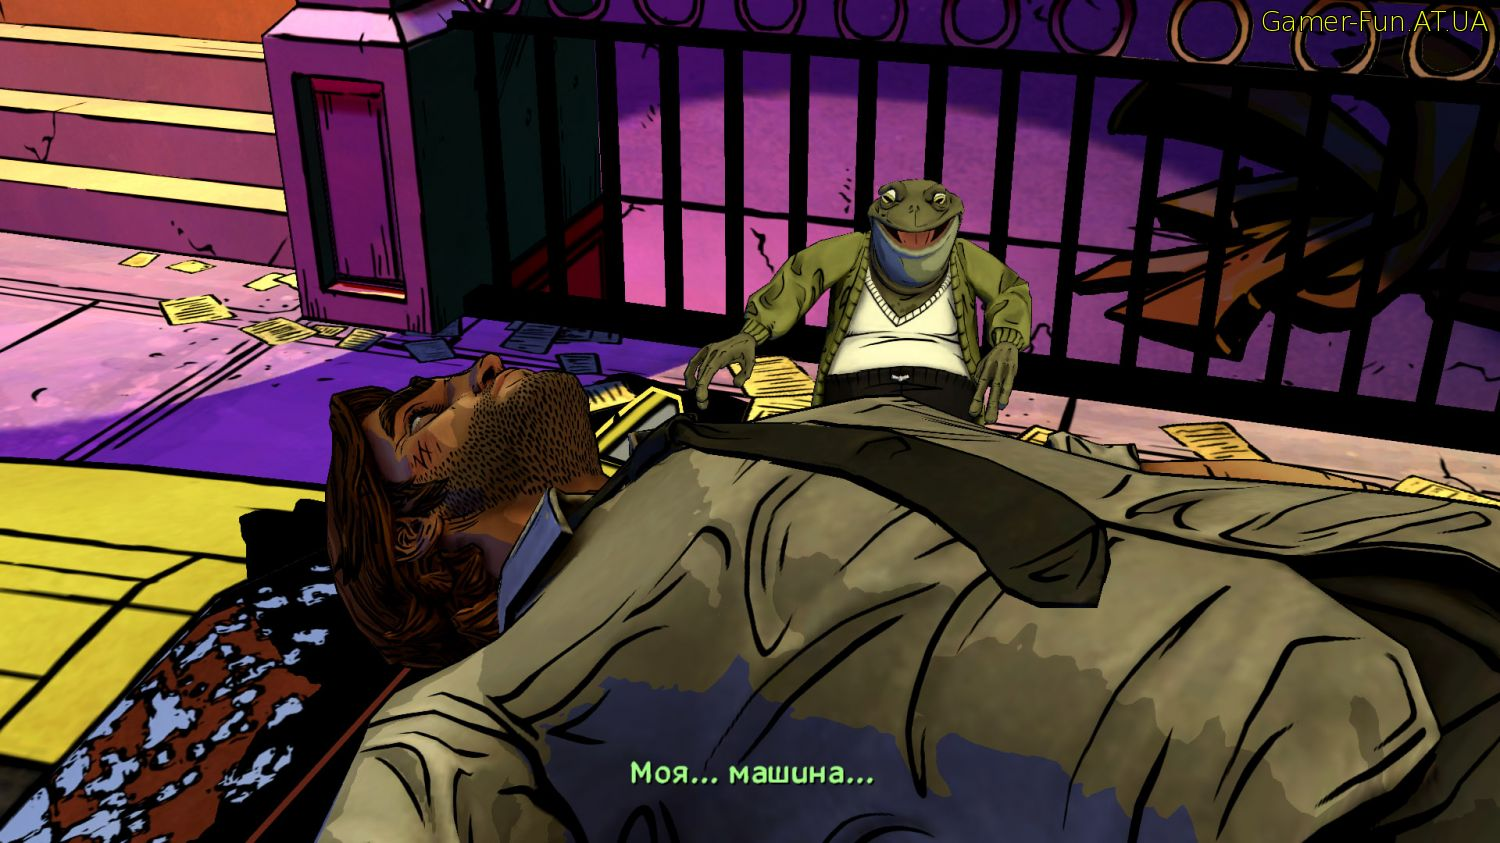 The Wolf Among Us: Episode 1 - 5 (2013) Русская версия [RePack], скриншоты The Wolf Among Us: Episode 1 - 5 (2013) Русская версия [RePack], скачать The Wolf Among Us: Episode 1 - 5 (2013) Русская версия [RePack], картинки The Wolf Among Us: Episode 1 - 5 (2013) Русская версия [RePack], постер The Wolf Among Us: Episode 1 - 5 (2013) Русская версия [RePack]